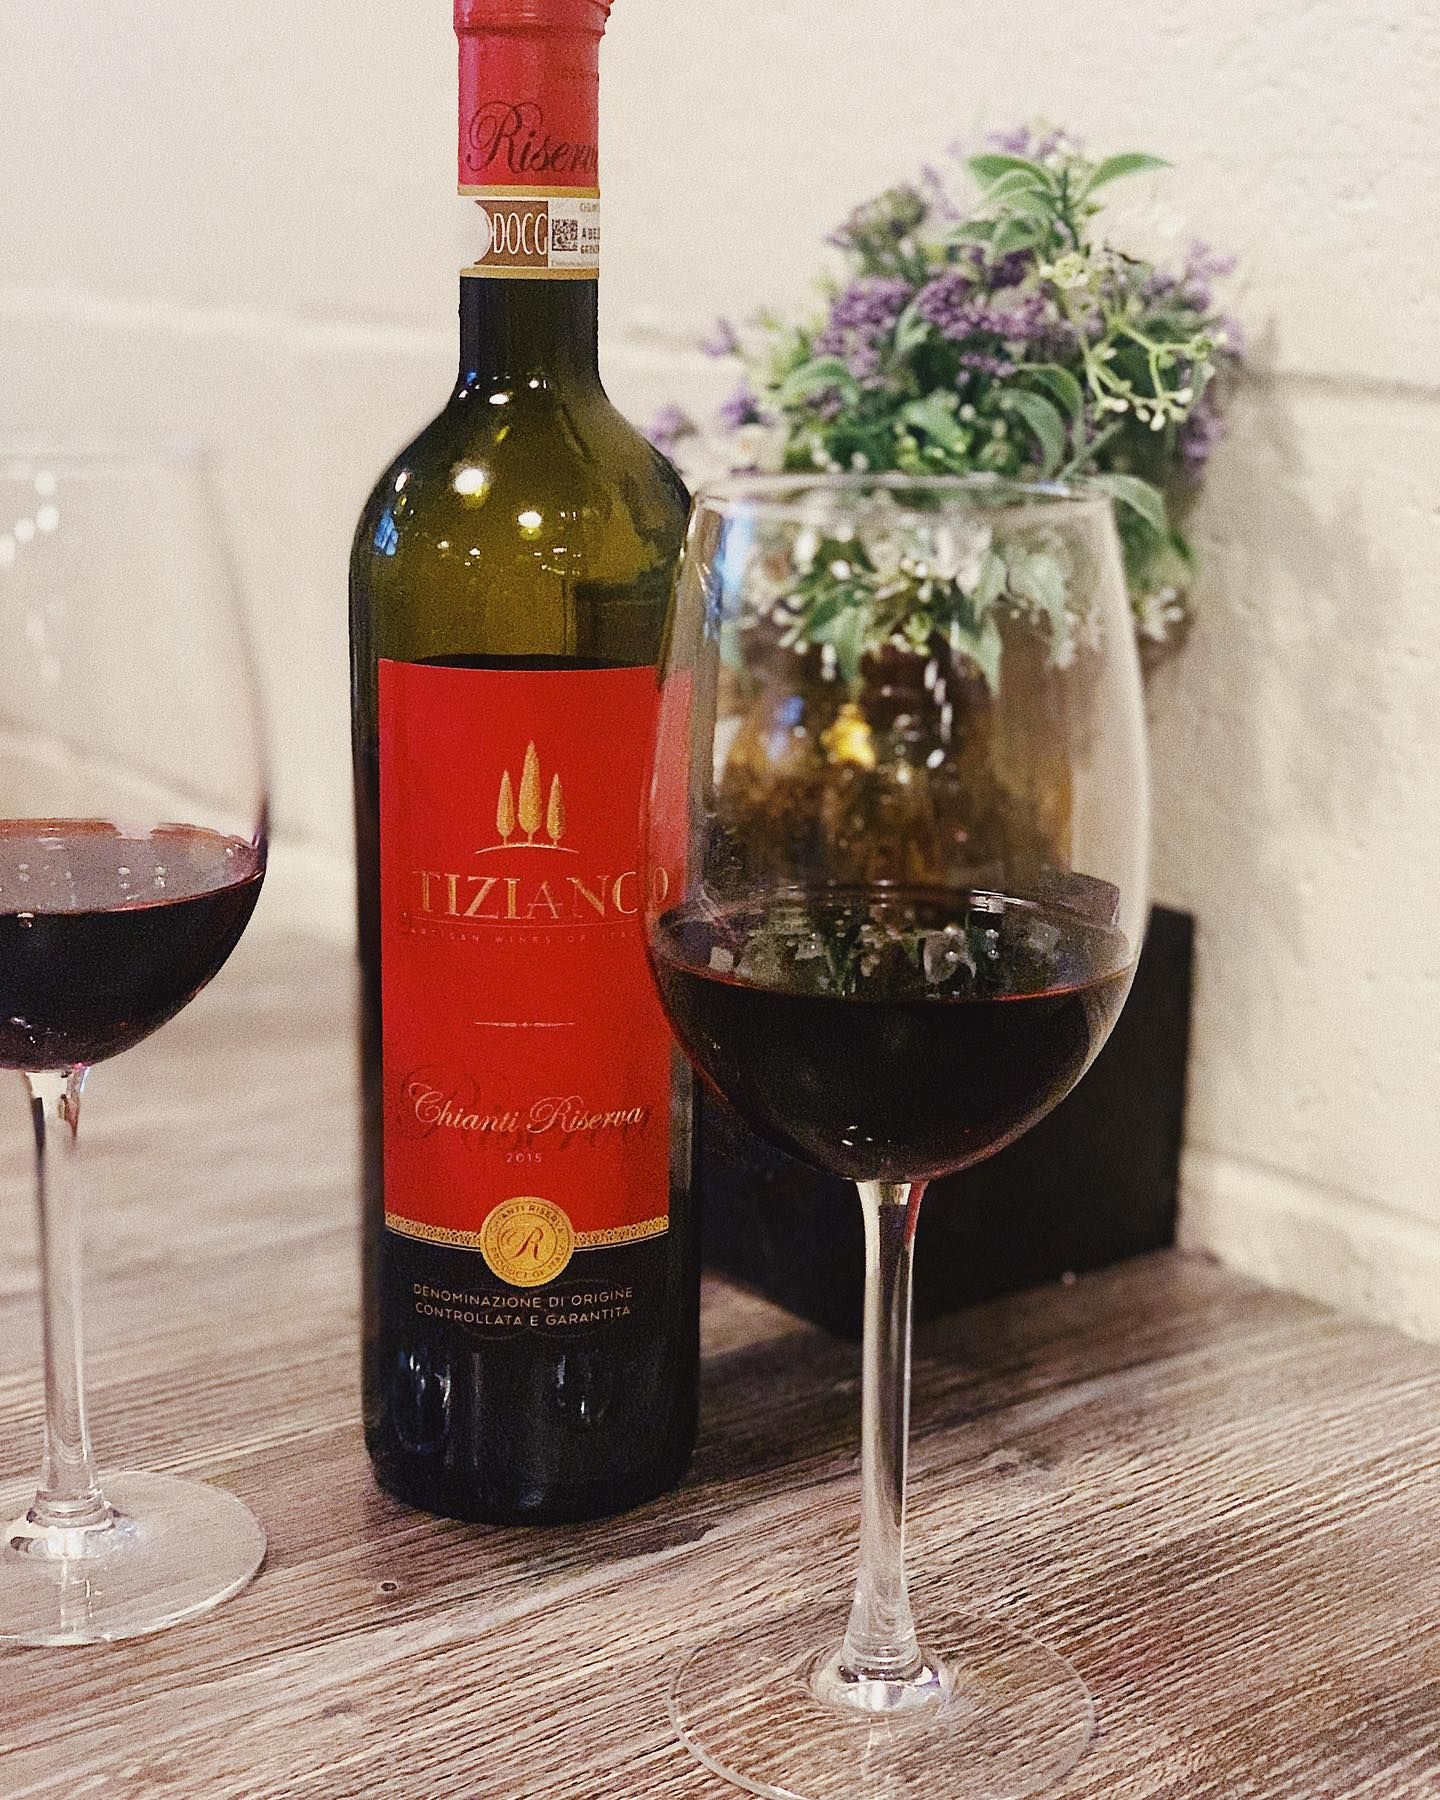 National Red Wine Day Well That Is A Holiday I Can Get Behind This Bottle Of Chiantiriserva Is Among One Of M In 2020 National Red Wine Day Italian Wine Chianti